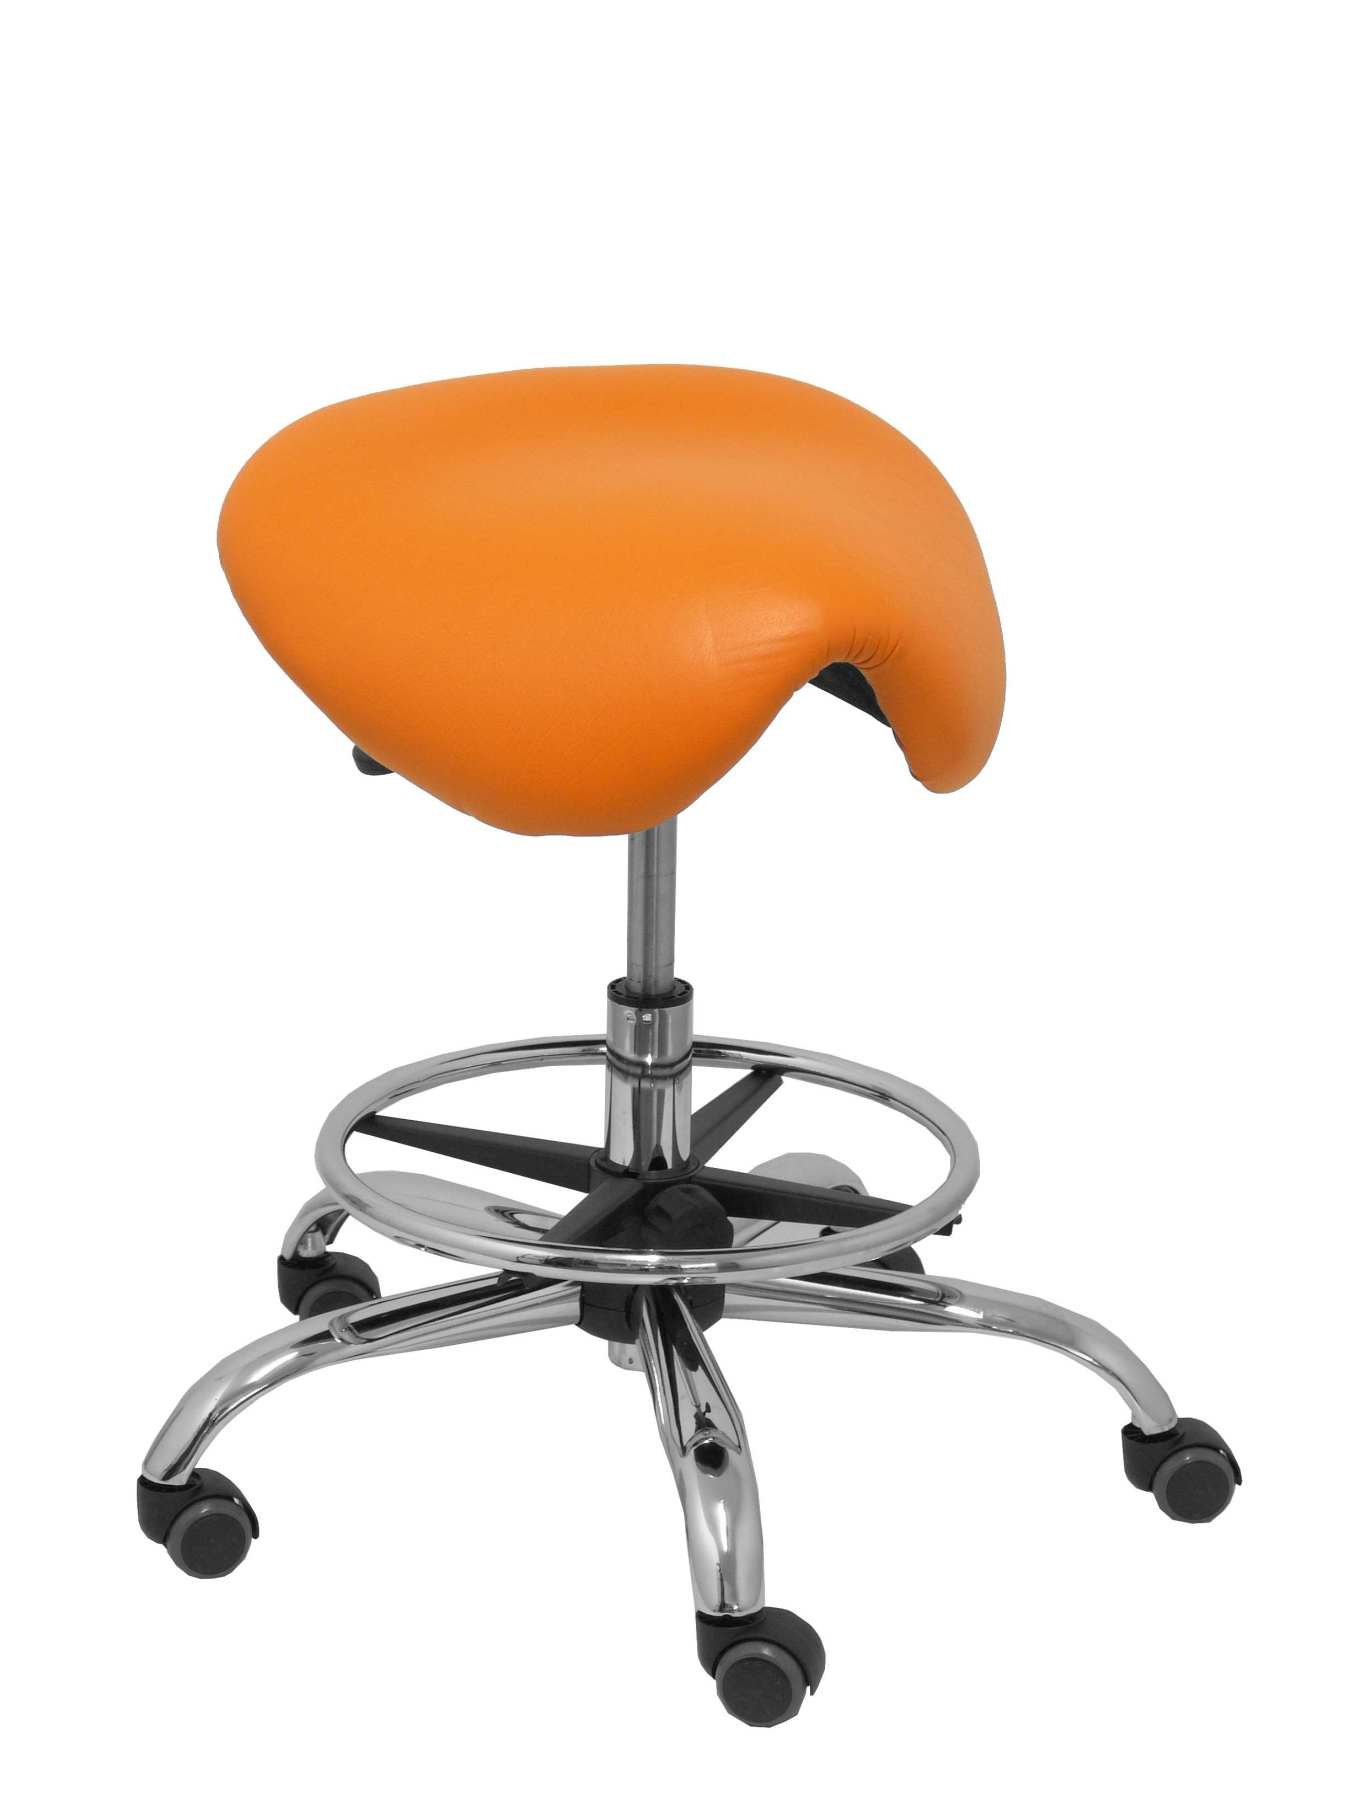 Stool Clinical Rotatable And Ergonomic Seat Anatomical And Adjustable Height (aro Footrest Chrome INCLUDED